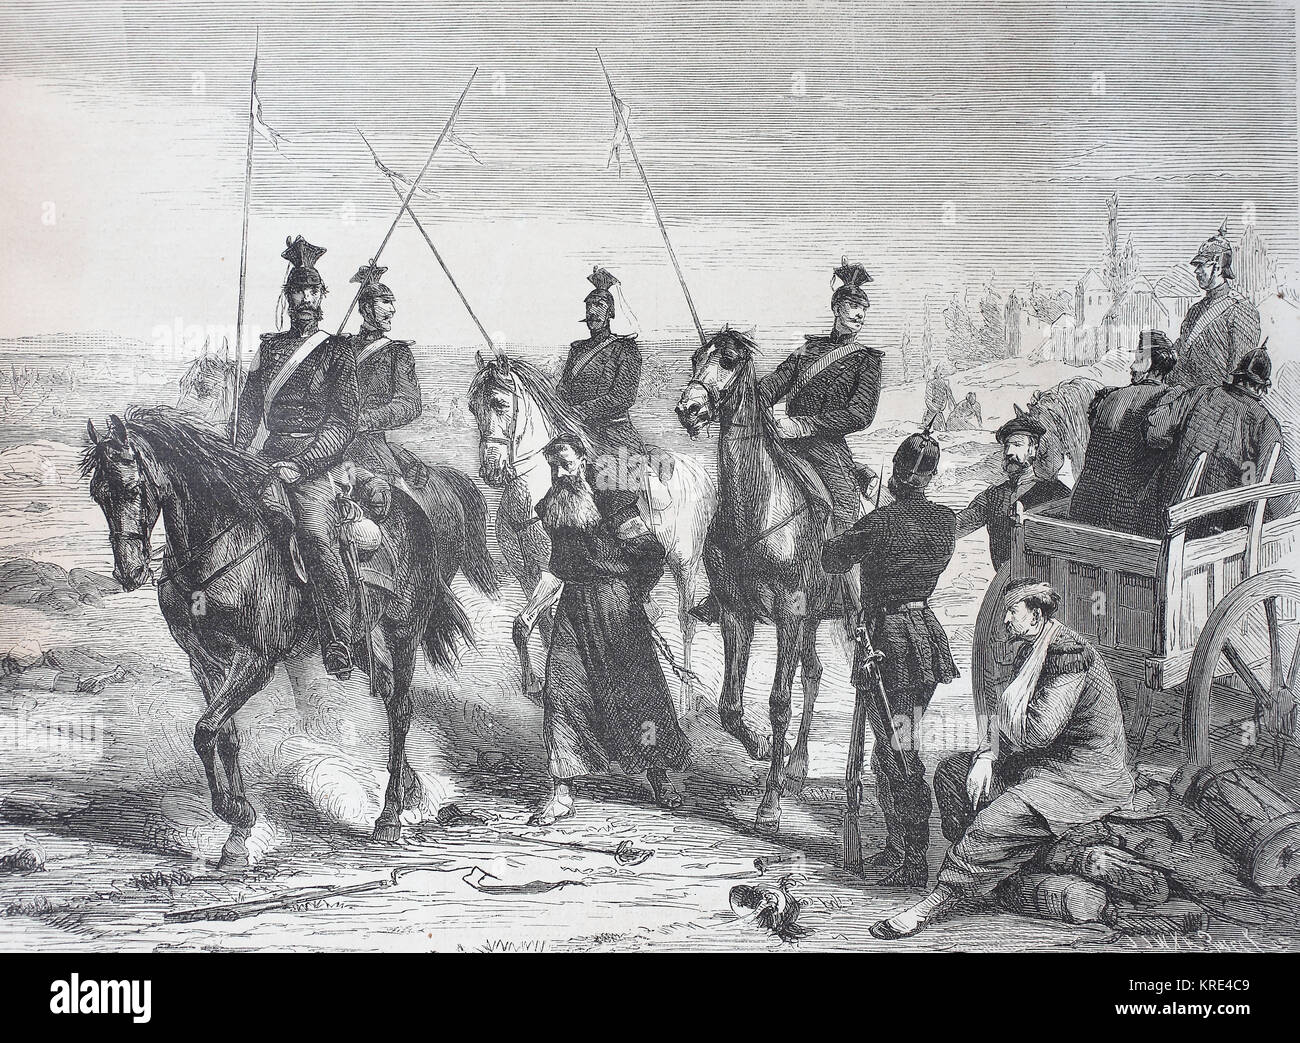 Capture of a French spy at Metz on August 23, 1870, France, German-French War 1870/1871, digital improved reproduction - Stock Image